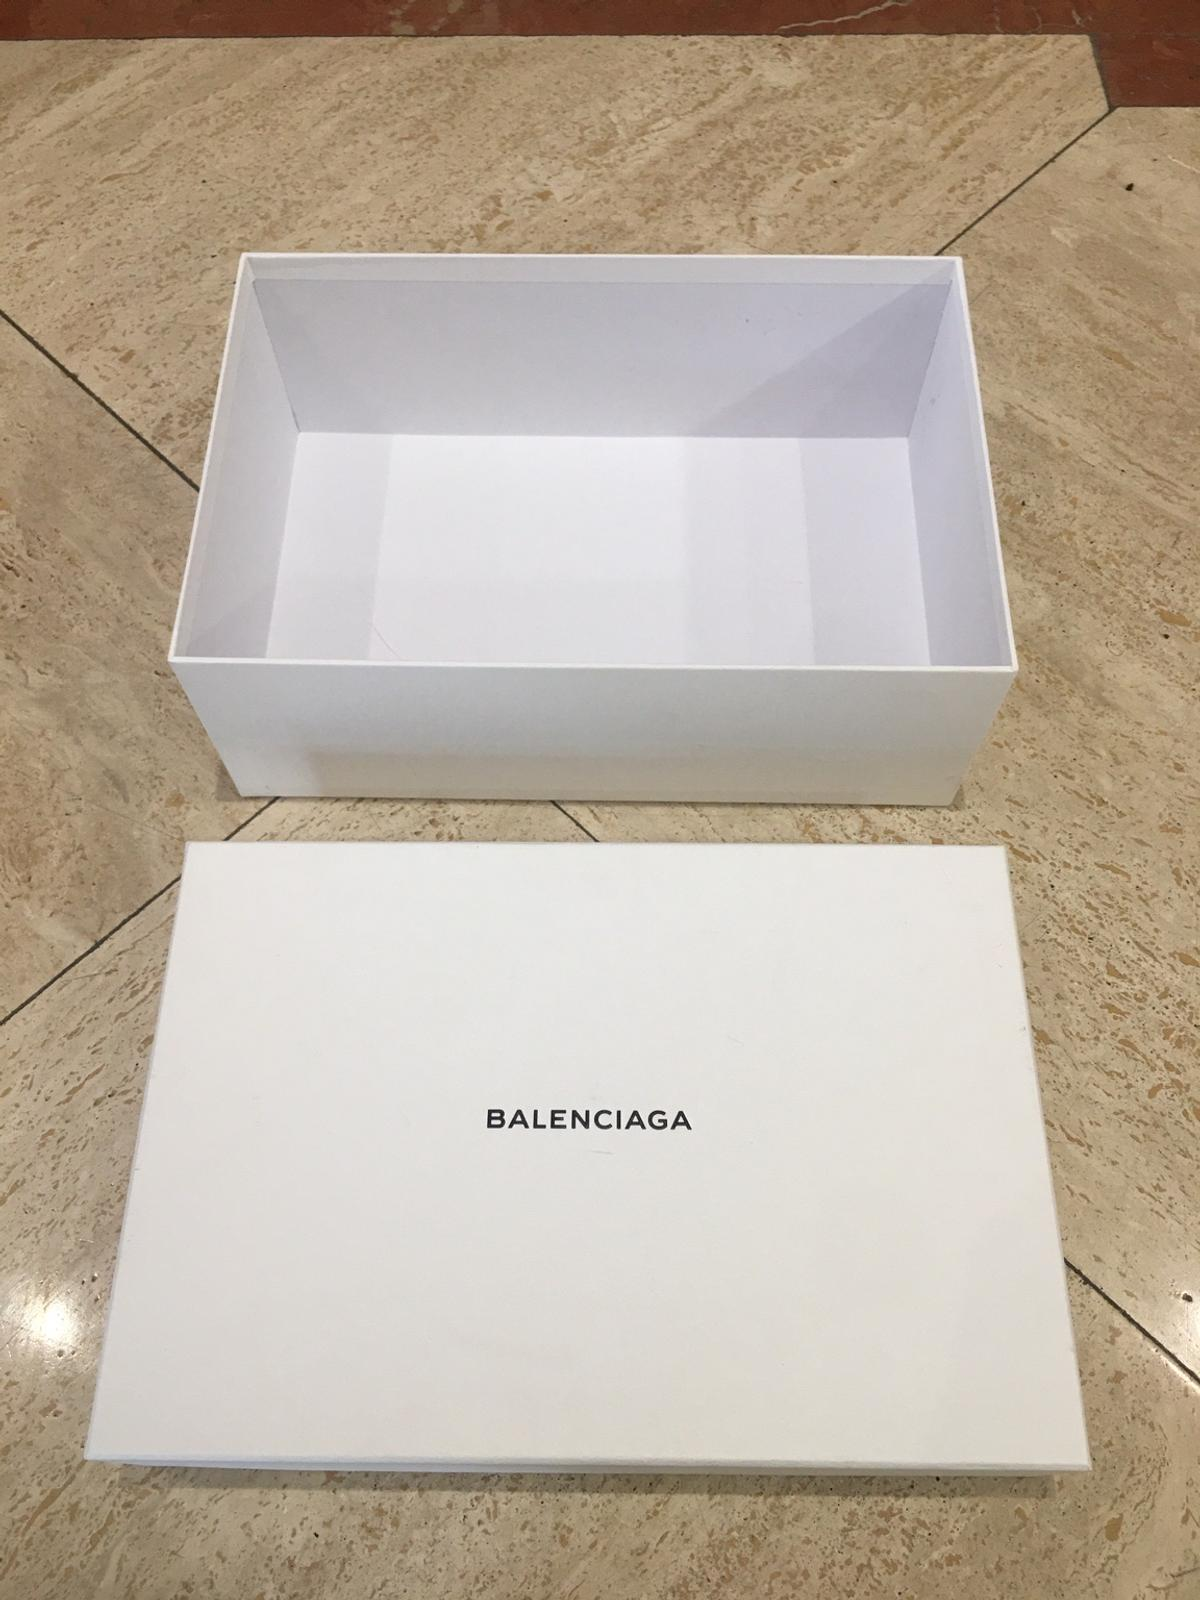 Balenciaga white box 37 x 25 x 13.5 cm Box very solid but with few marks No offer , hard to find